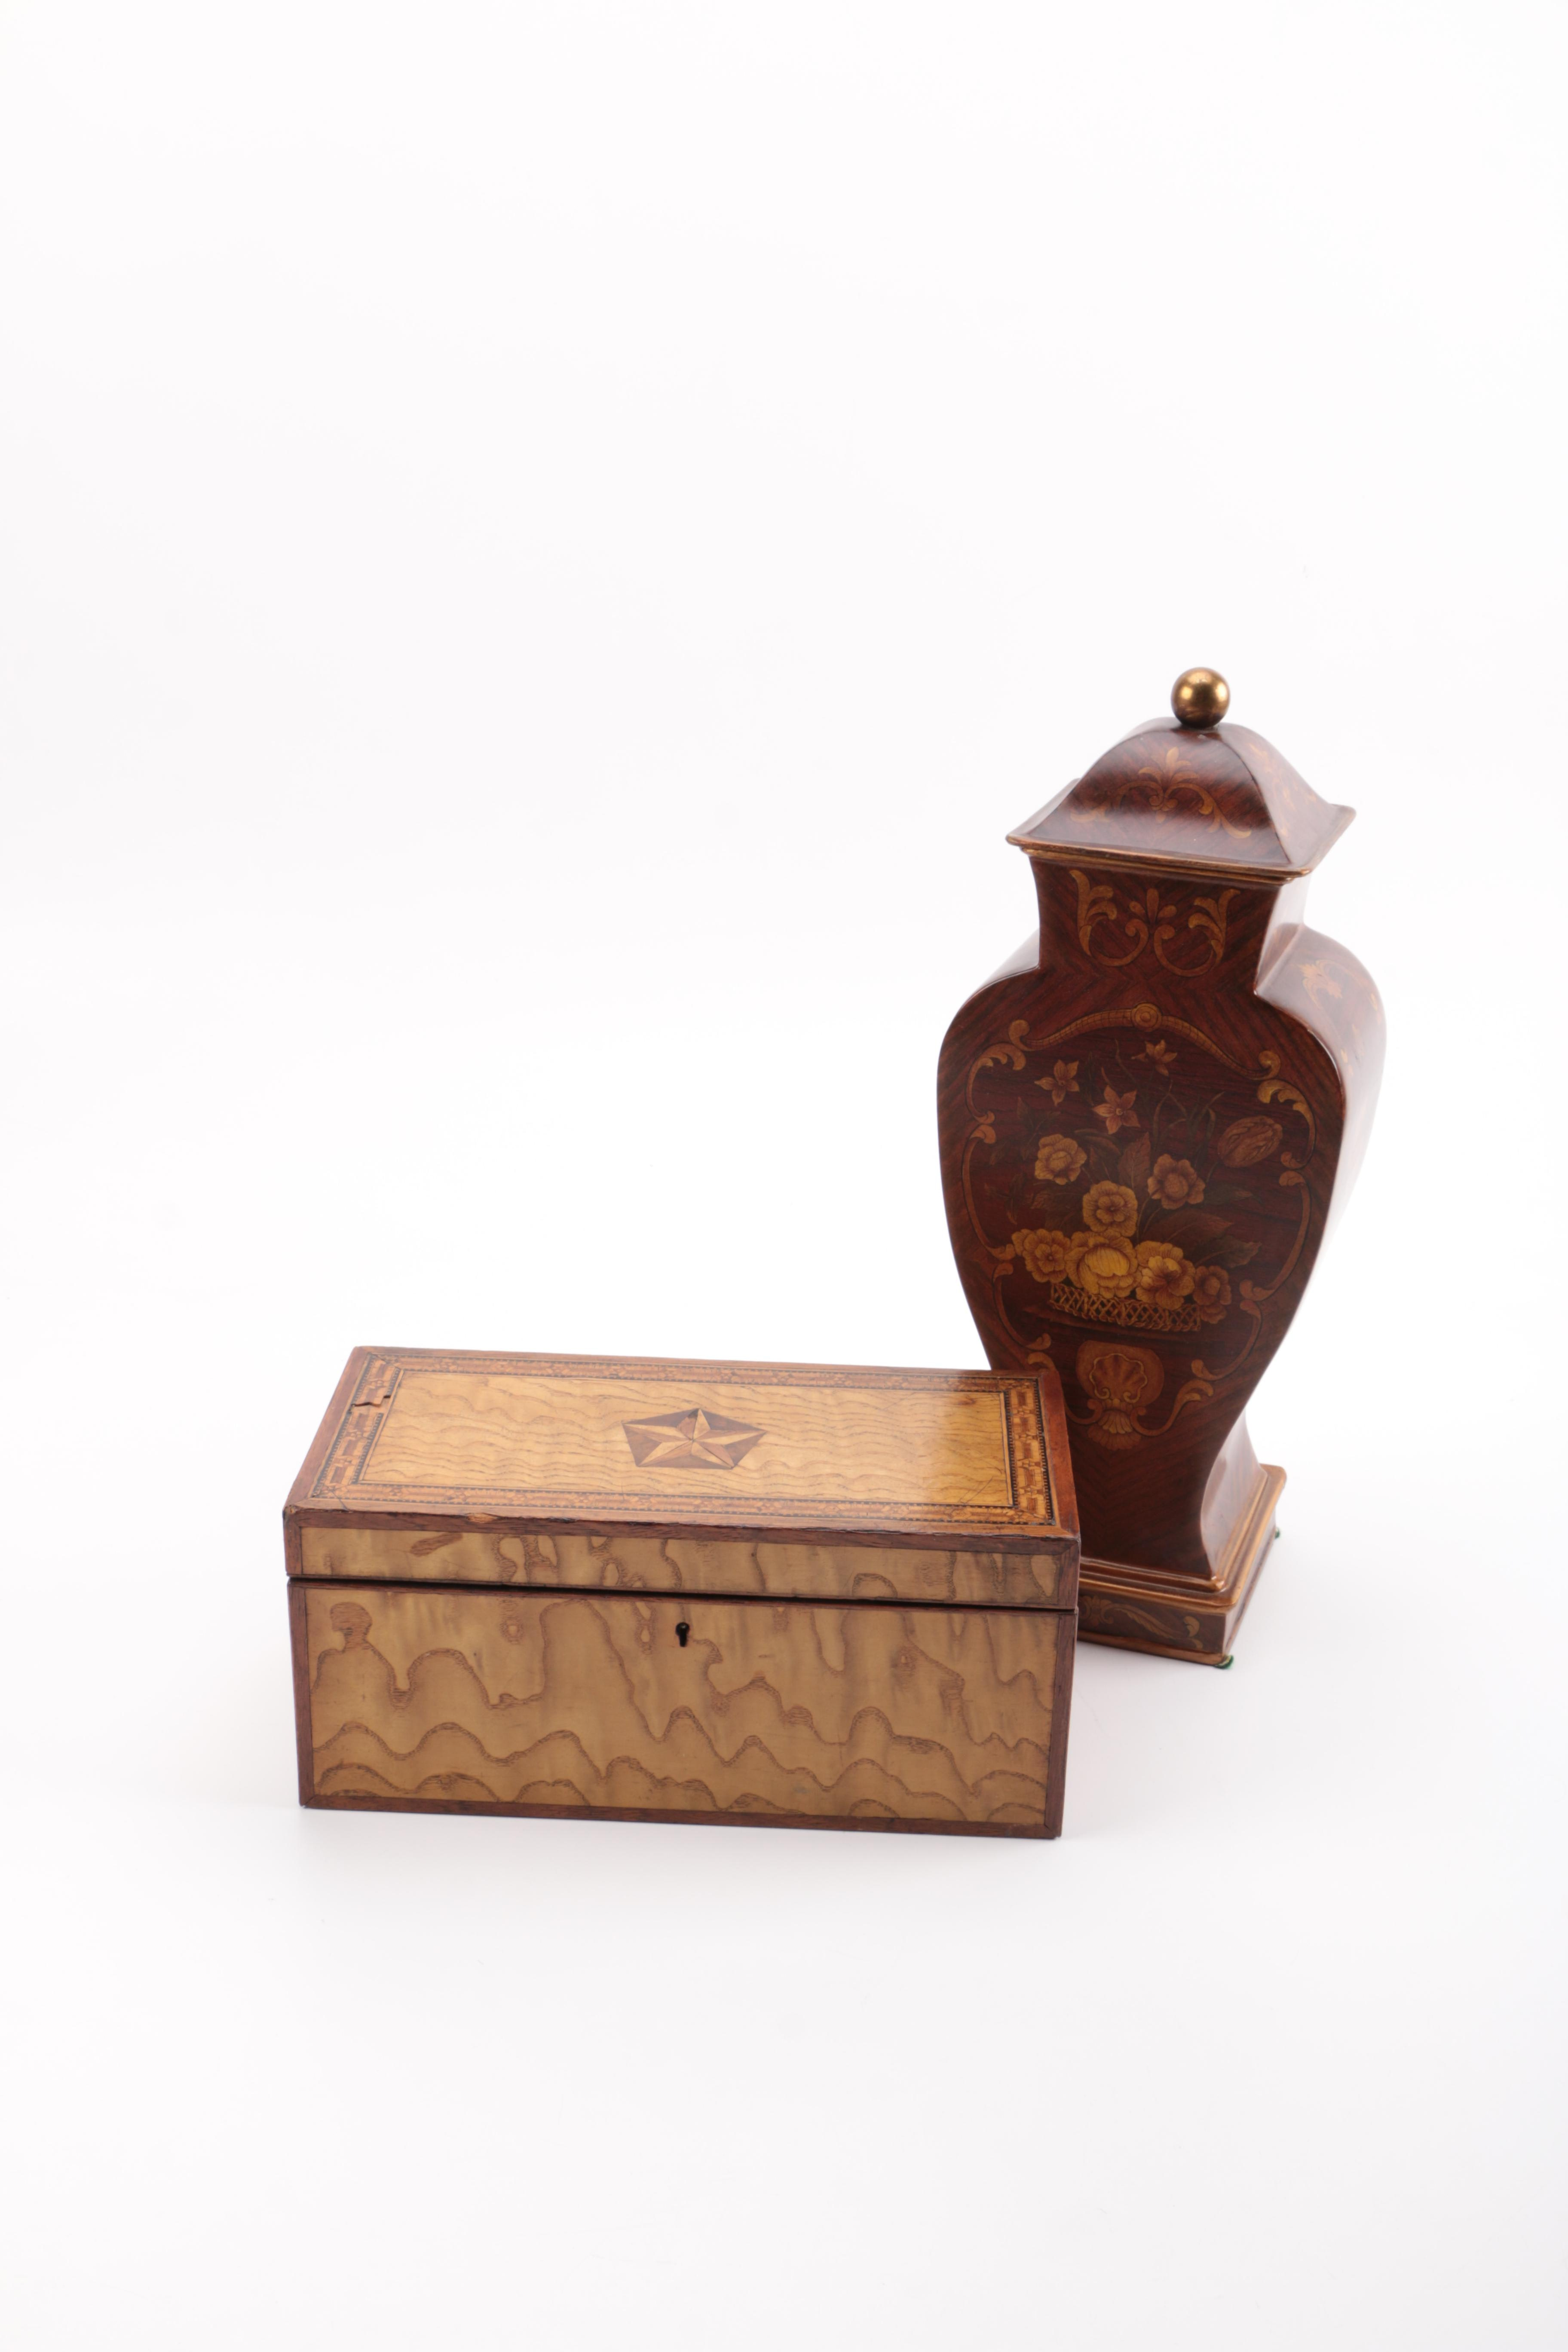 Decorative Inlay Chest and an Urn